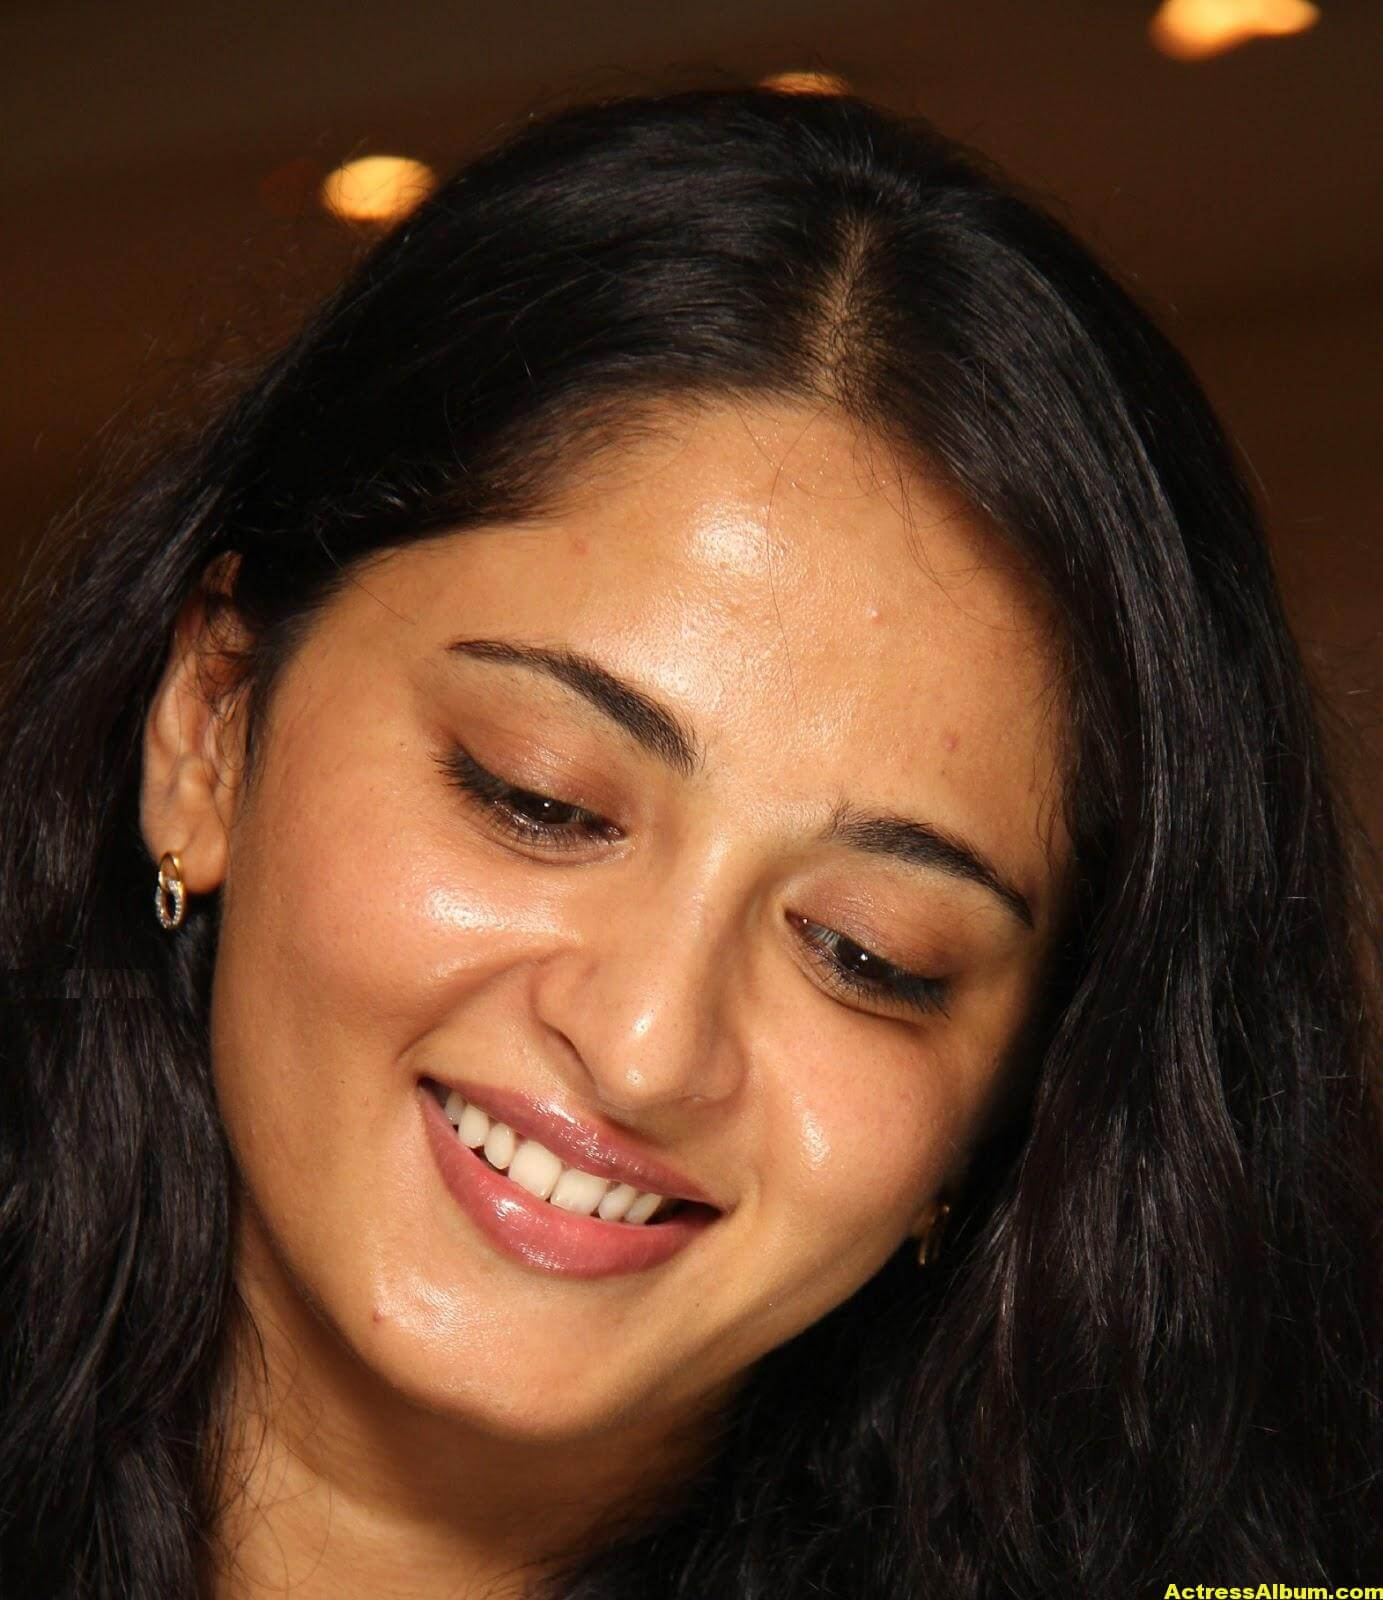 Anushka Shetty Gorgeous Face Close Up Photos 1